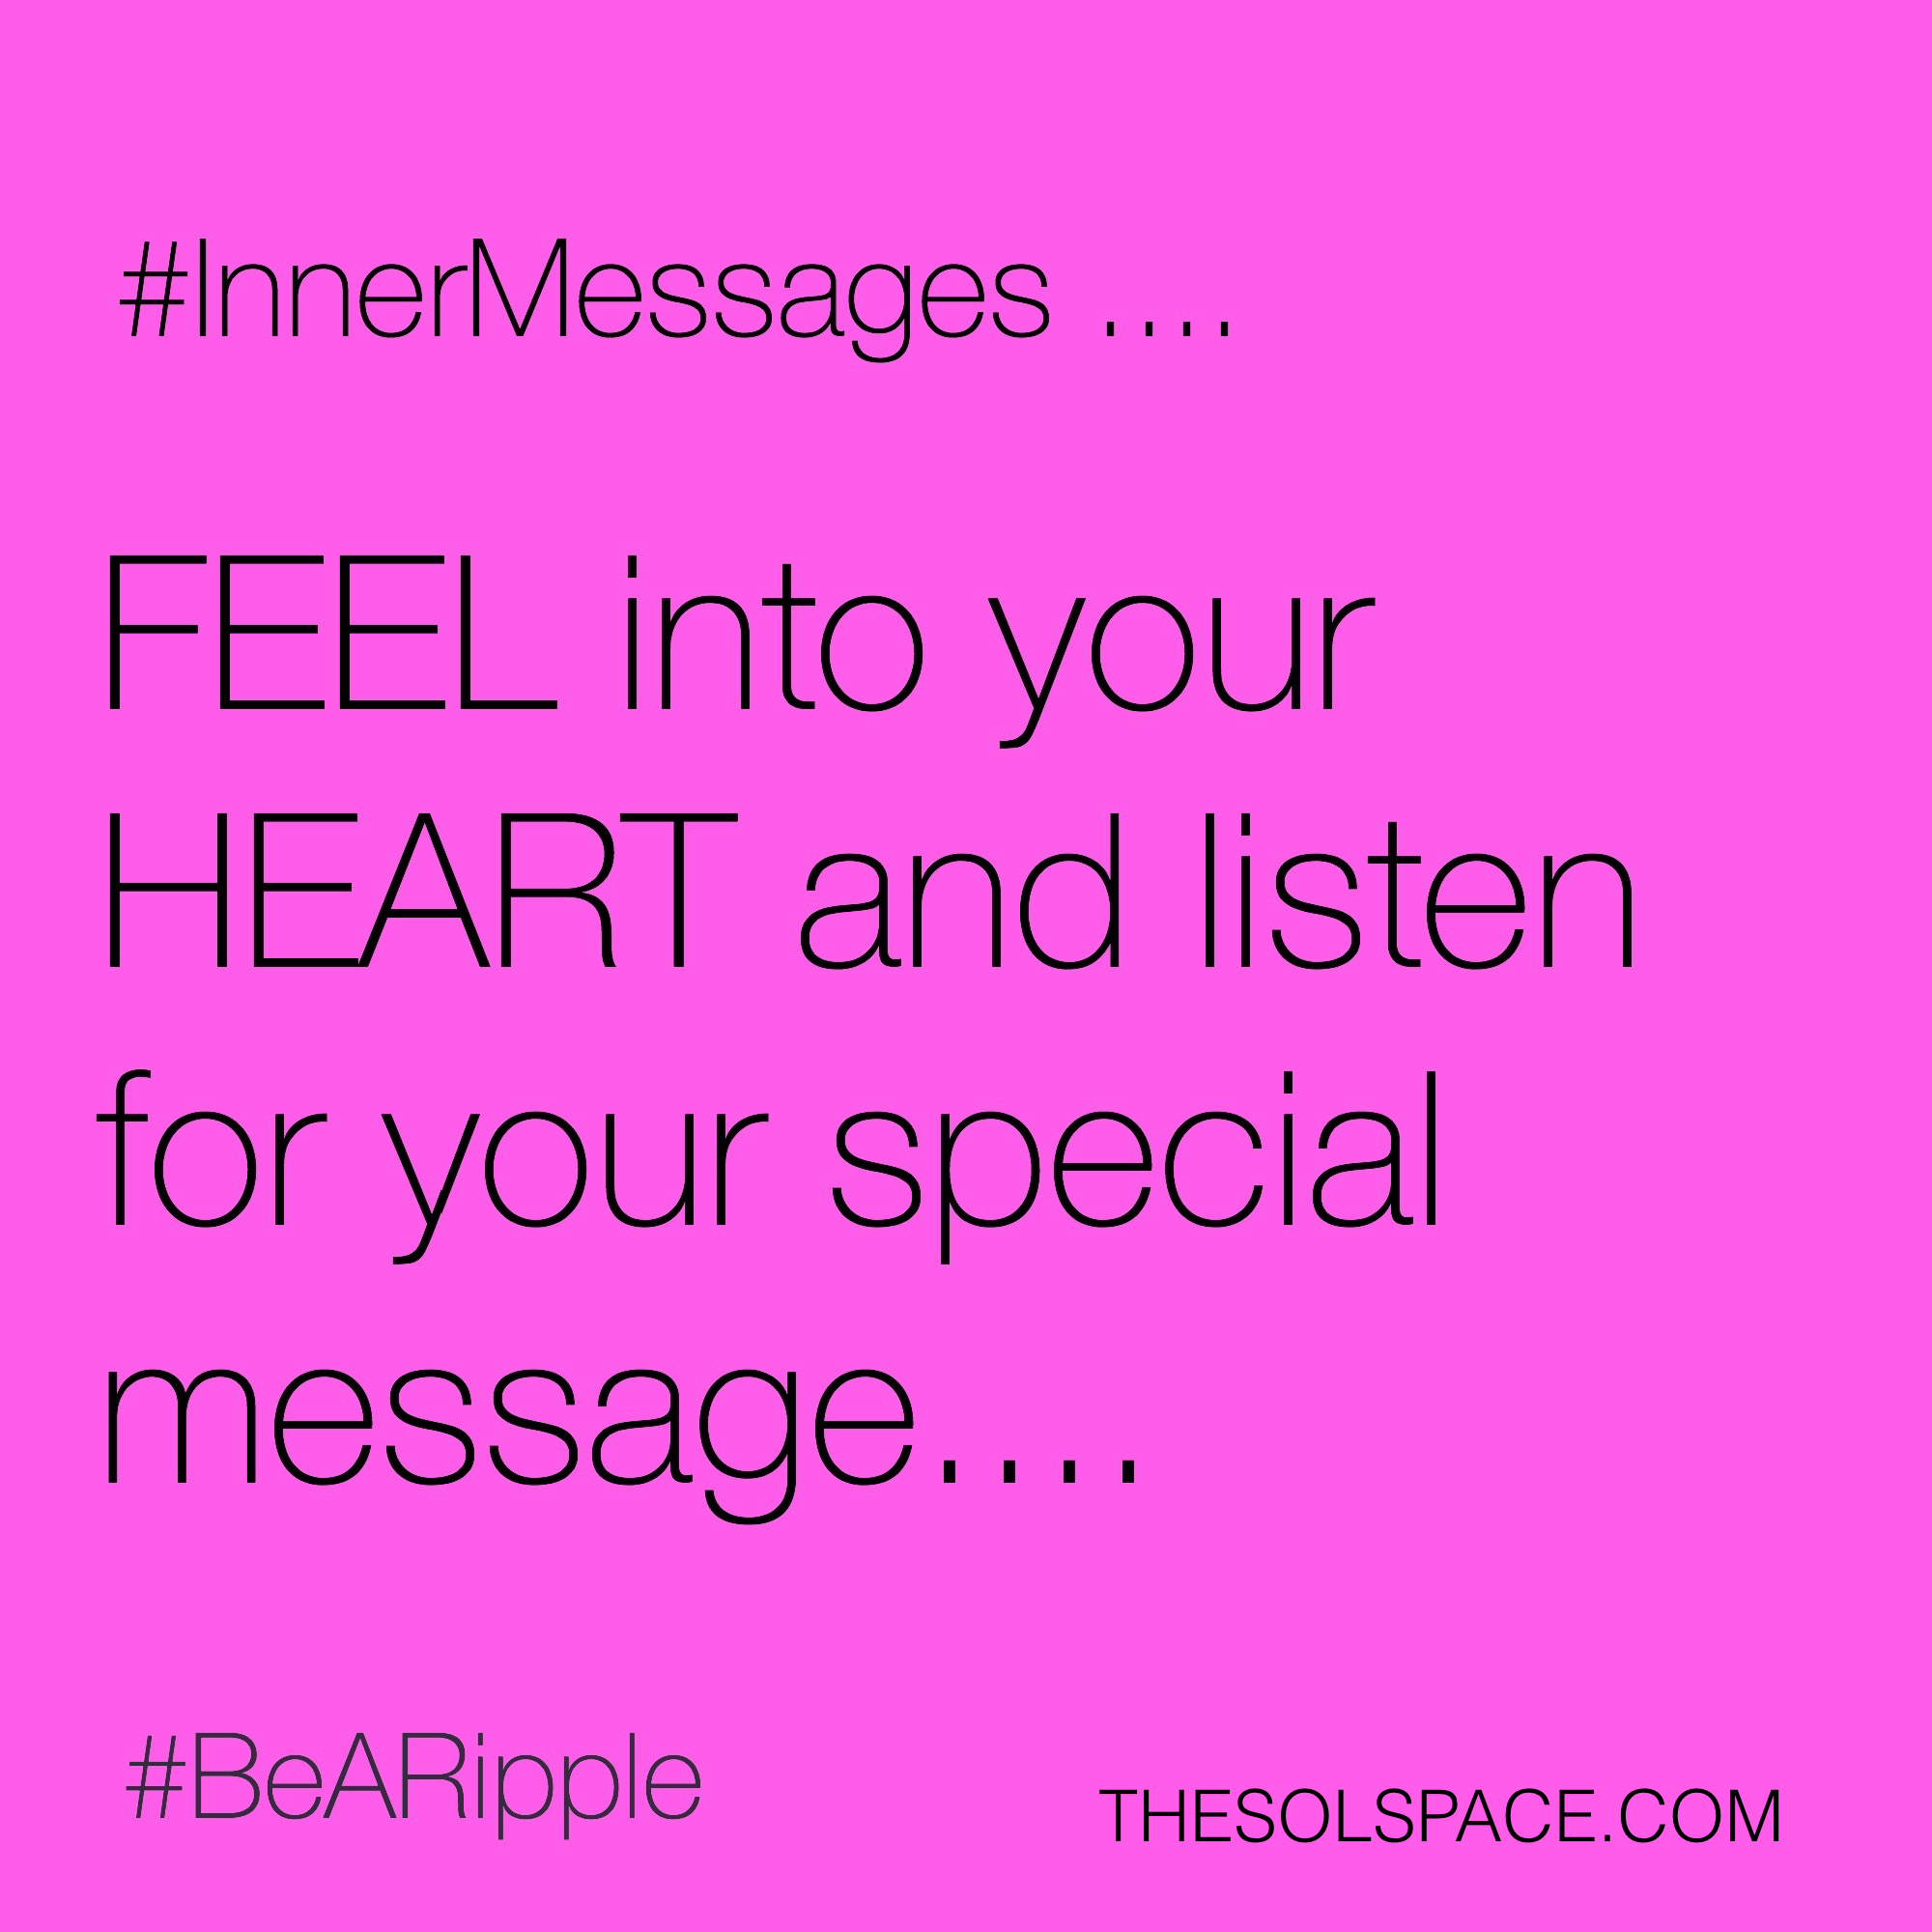 #BeARipple..FEEL into your HEART and listen for your special message @theSOLspace